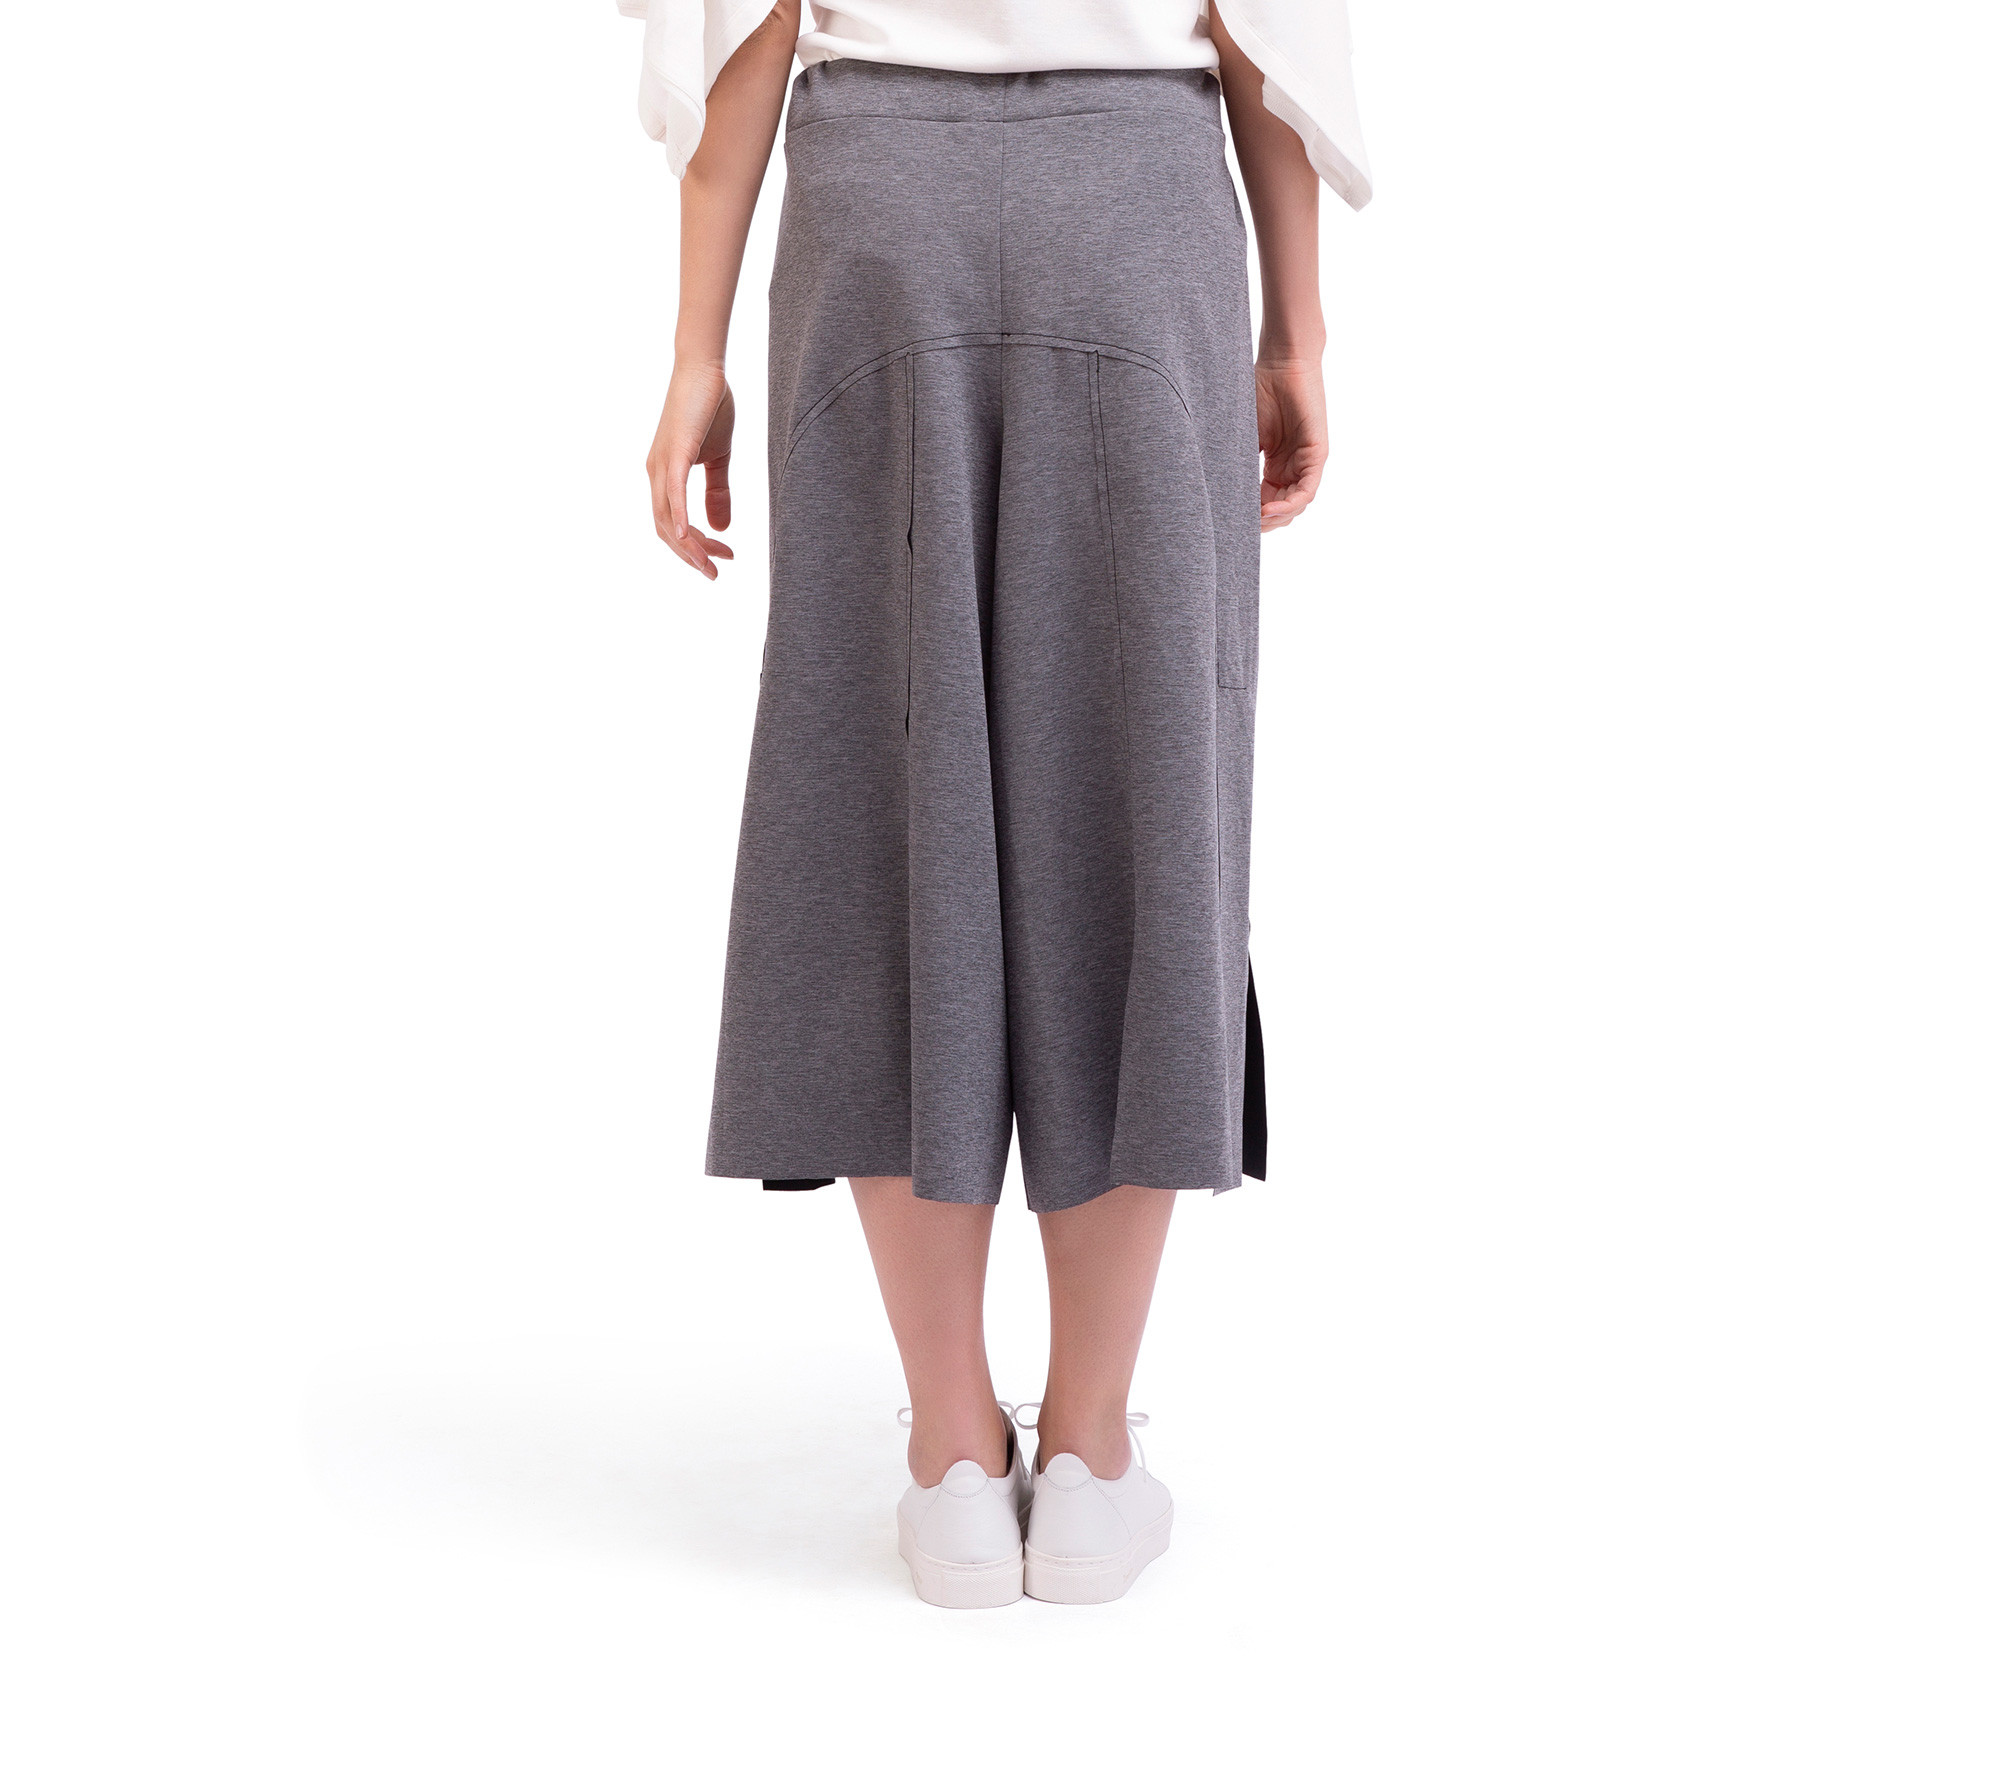 Stretch knit reversible culottes